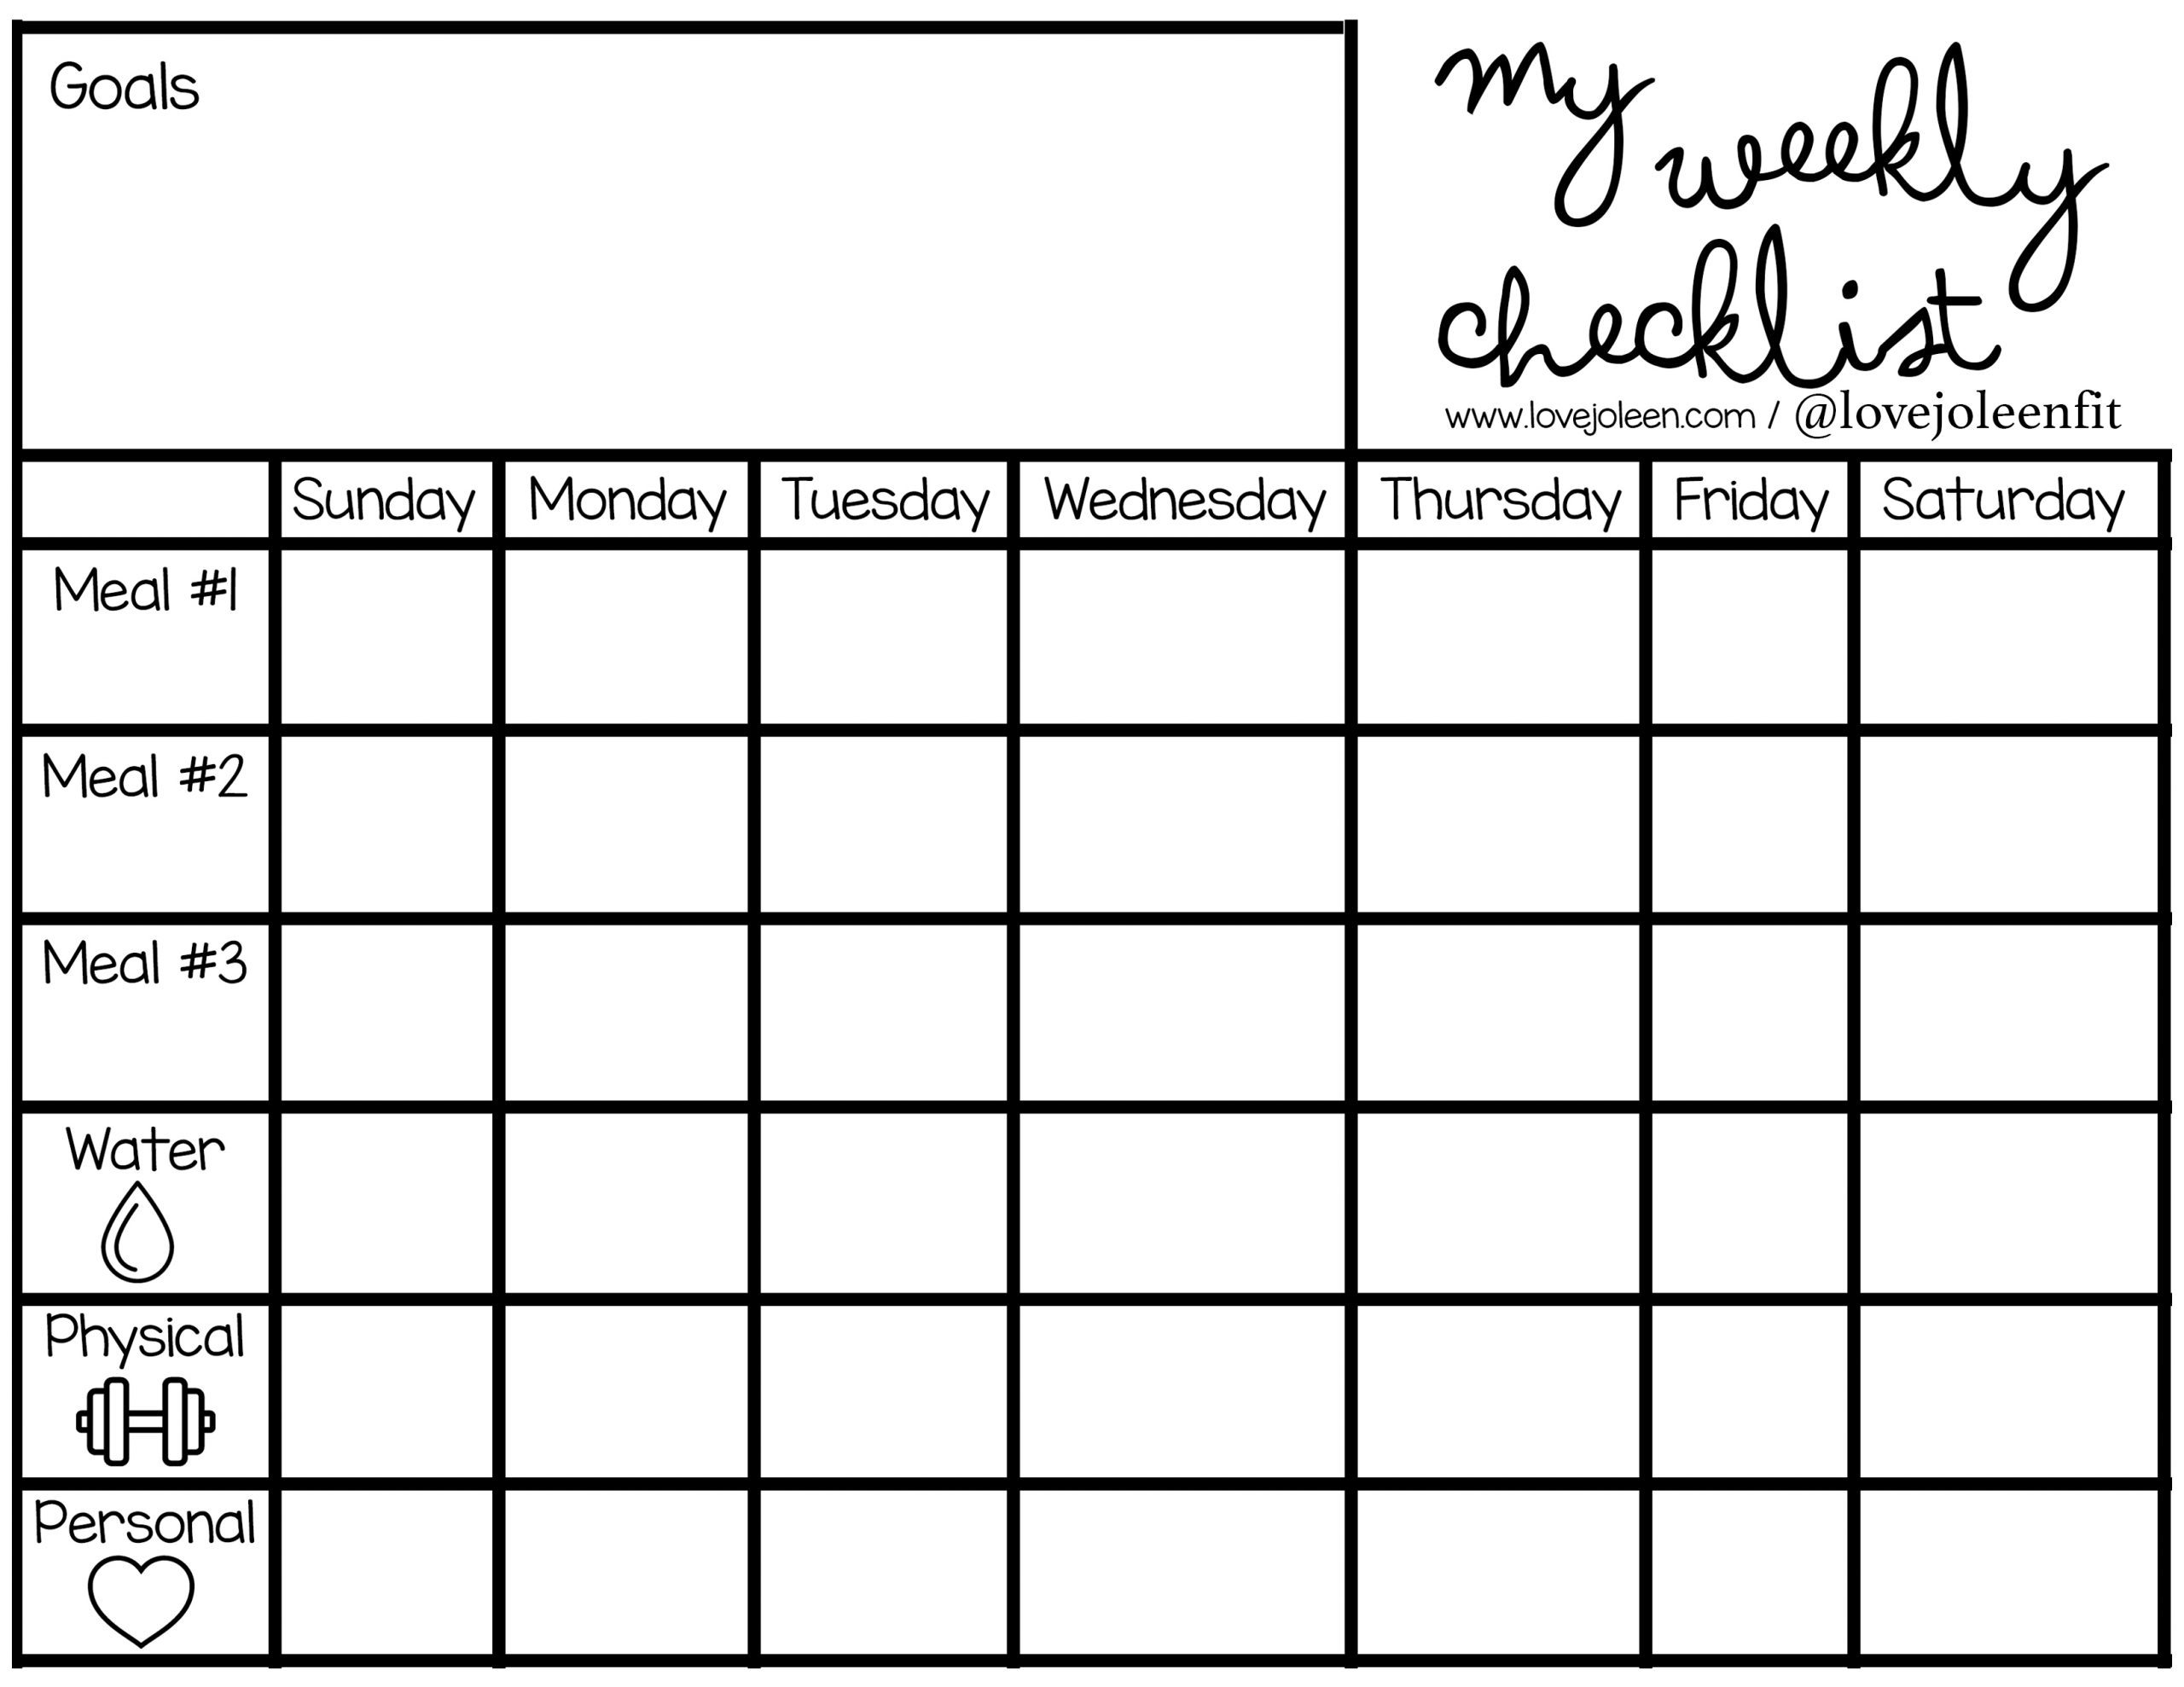 Free download printable that says my weekly checklist and includes a blank planner for tracking goals, meals, water intake, workouts, and more.